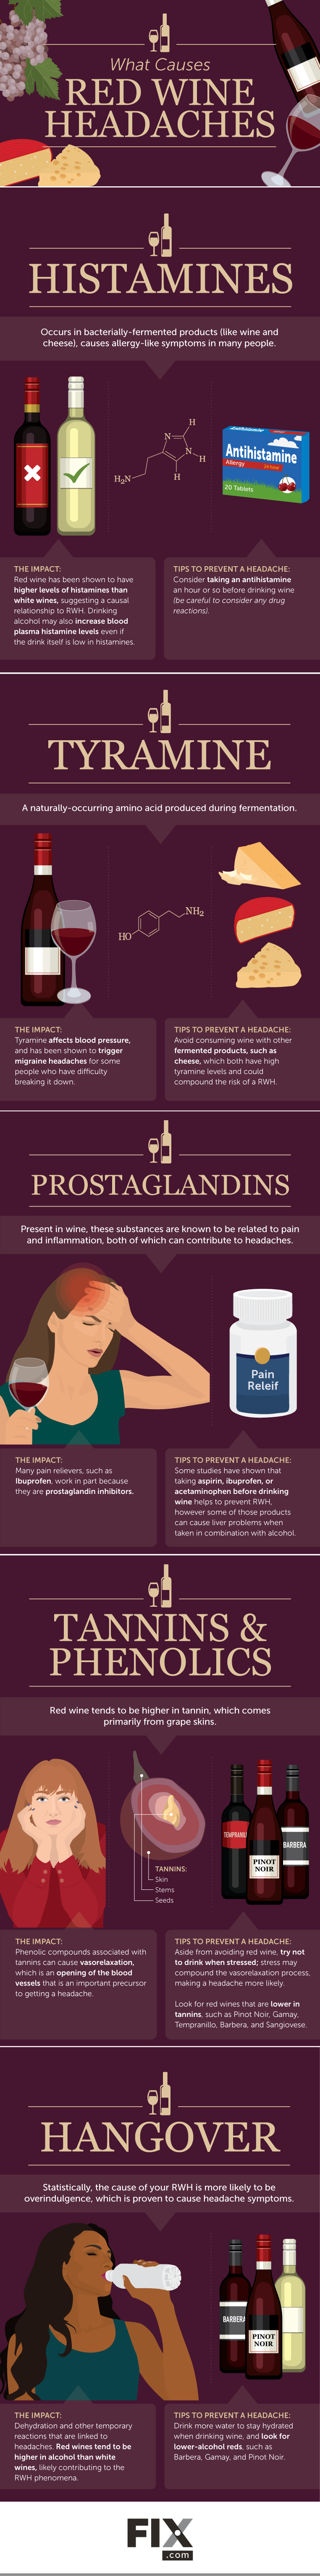 How to Avoid Red Wine Headaches | Fix com